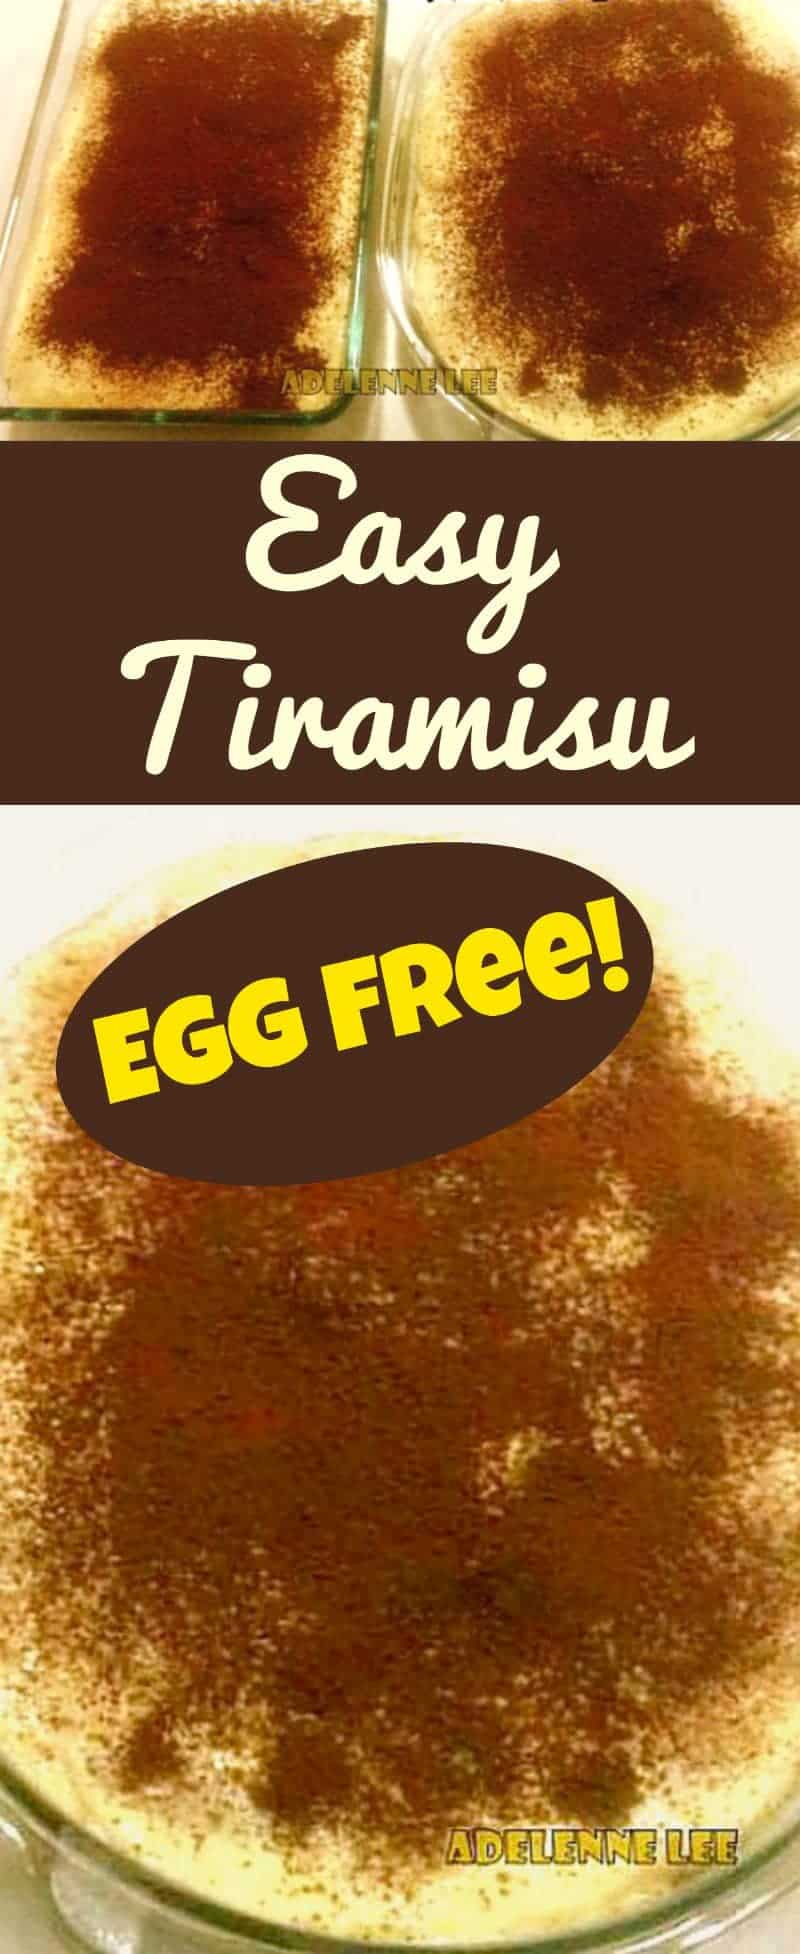 Easy Tiramisu. A very simple recipe with great results! Also egg free.